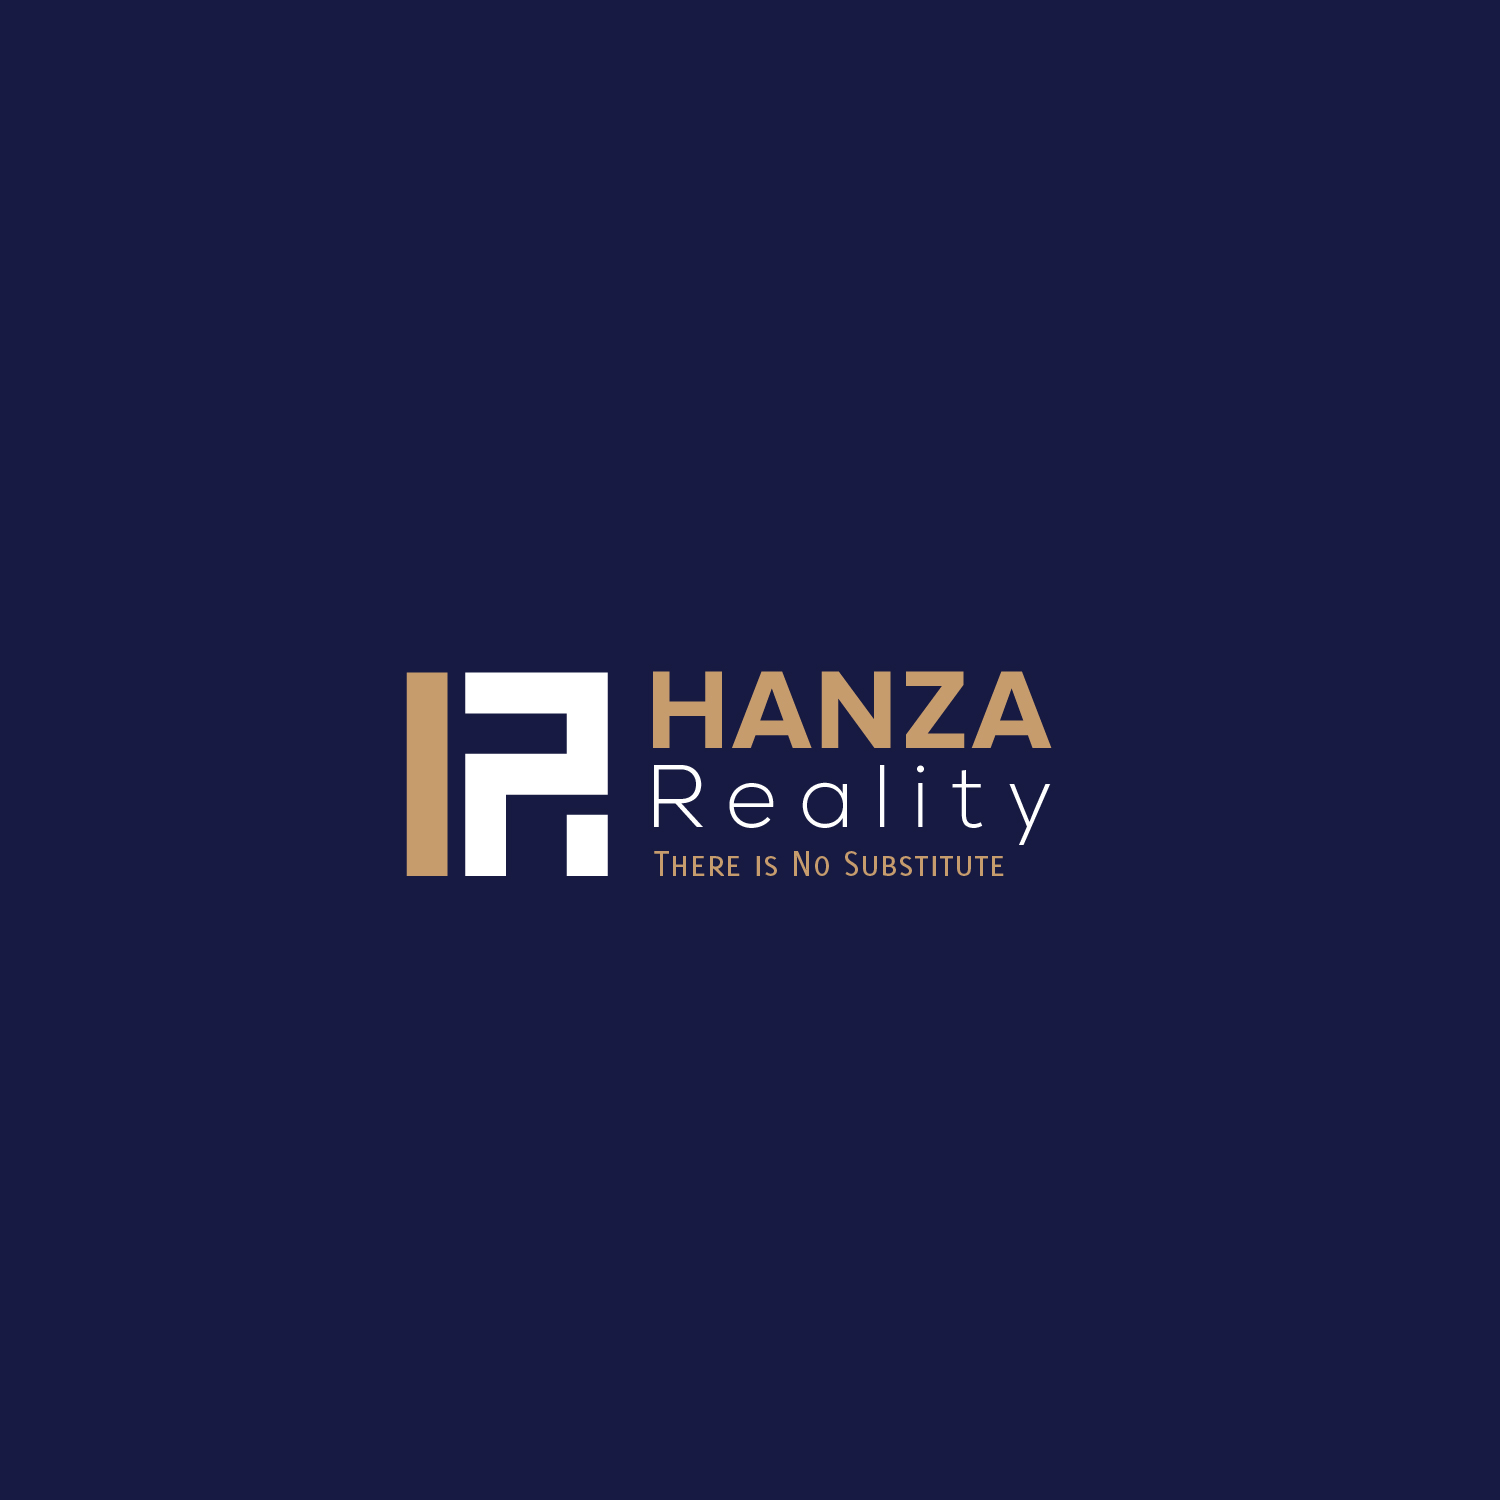 Logo Design by Irshad Siddiqui - Entry No. 429 in the Logo Design Contest Logo Design for Hanza Realty.